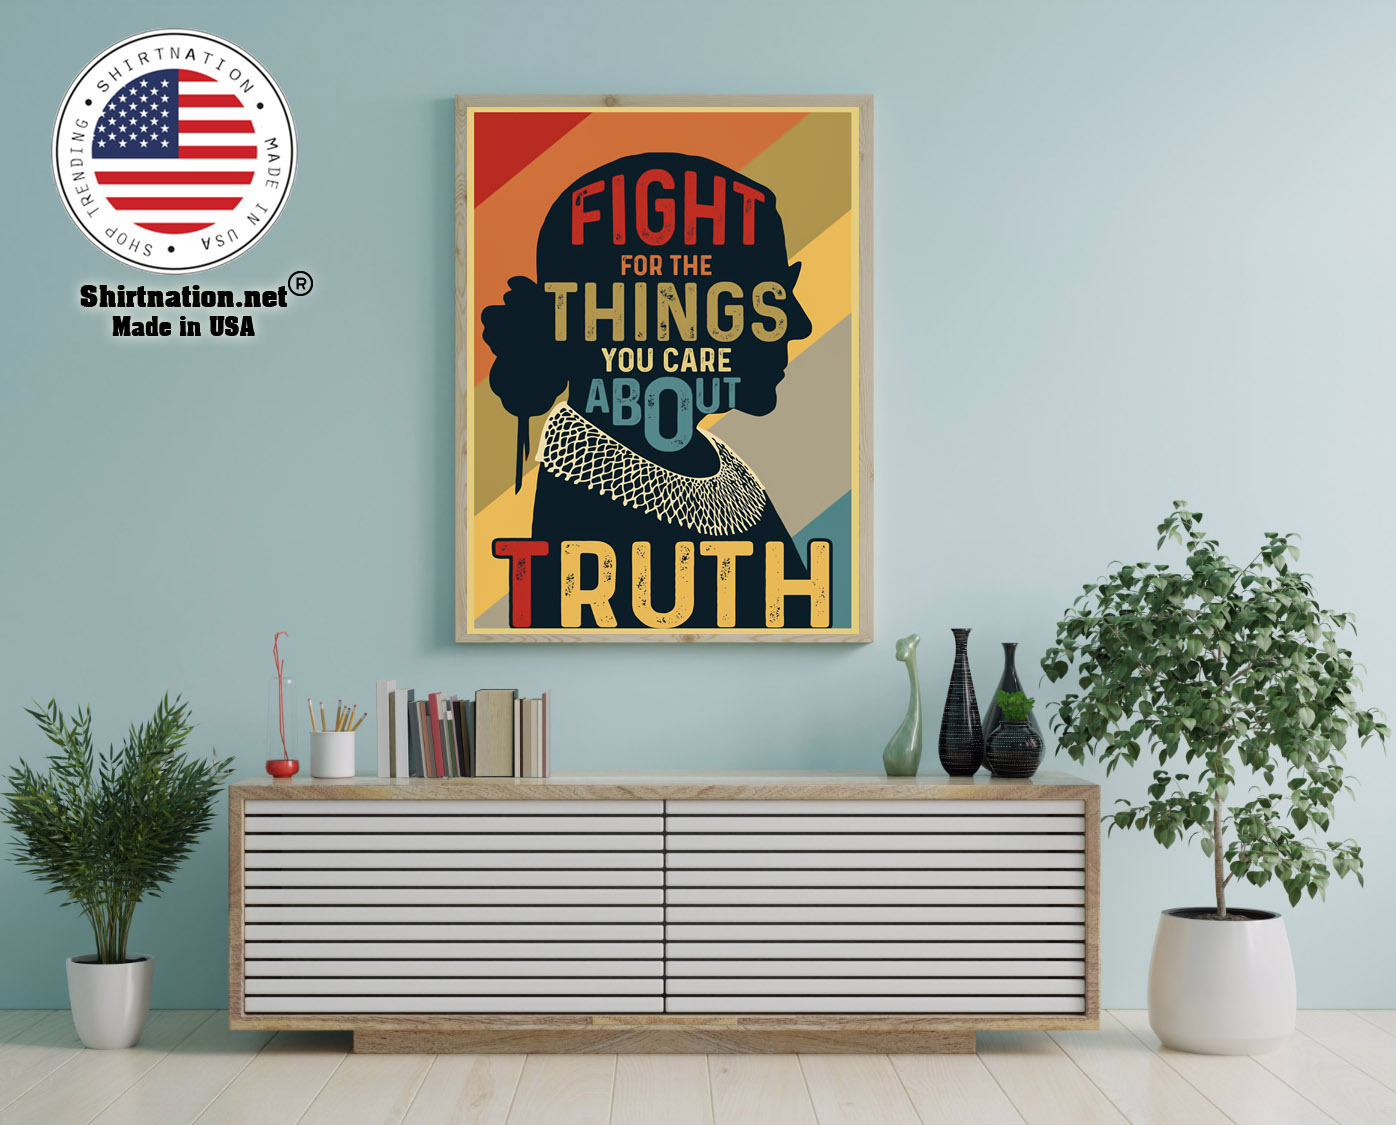 Ruth Fight for the things you care about truth poster 12